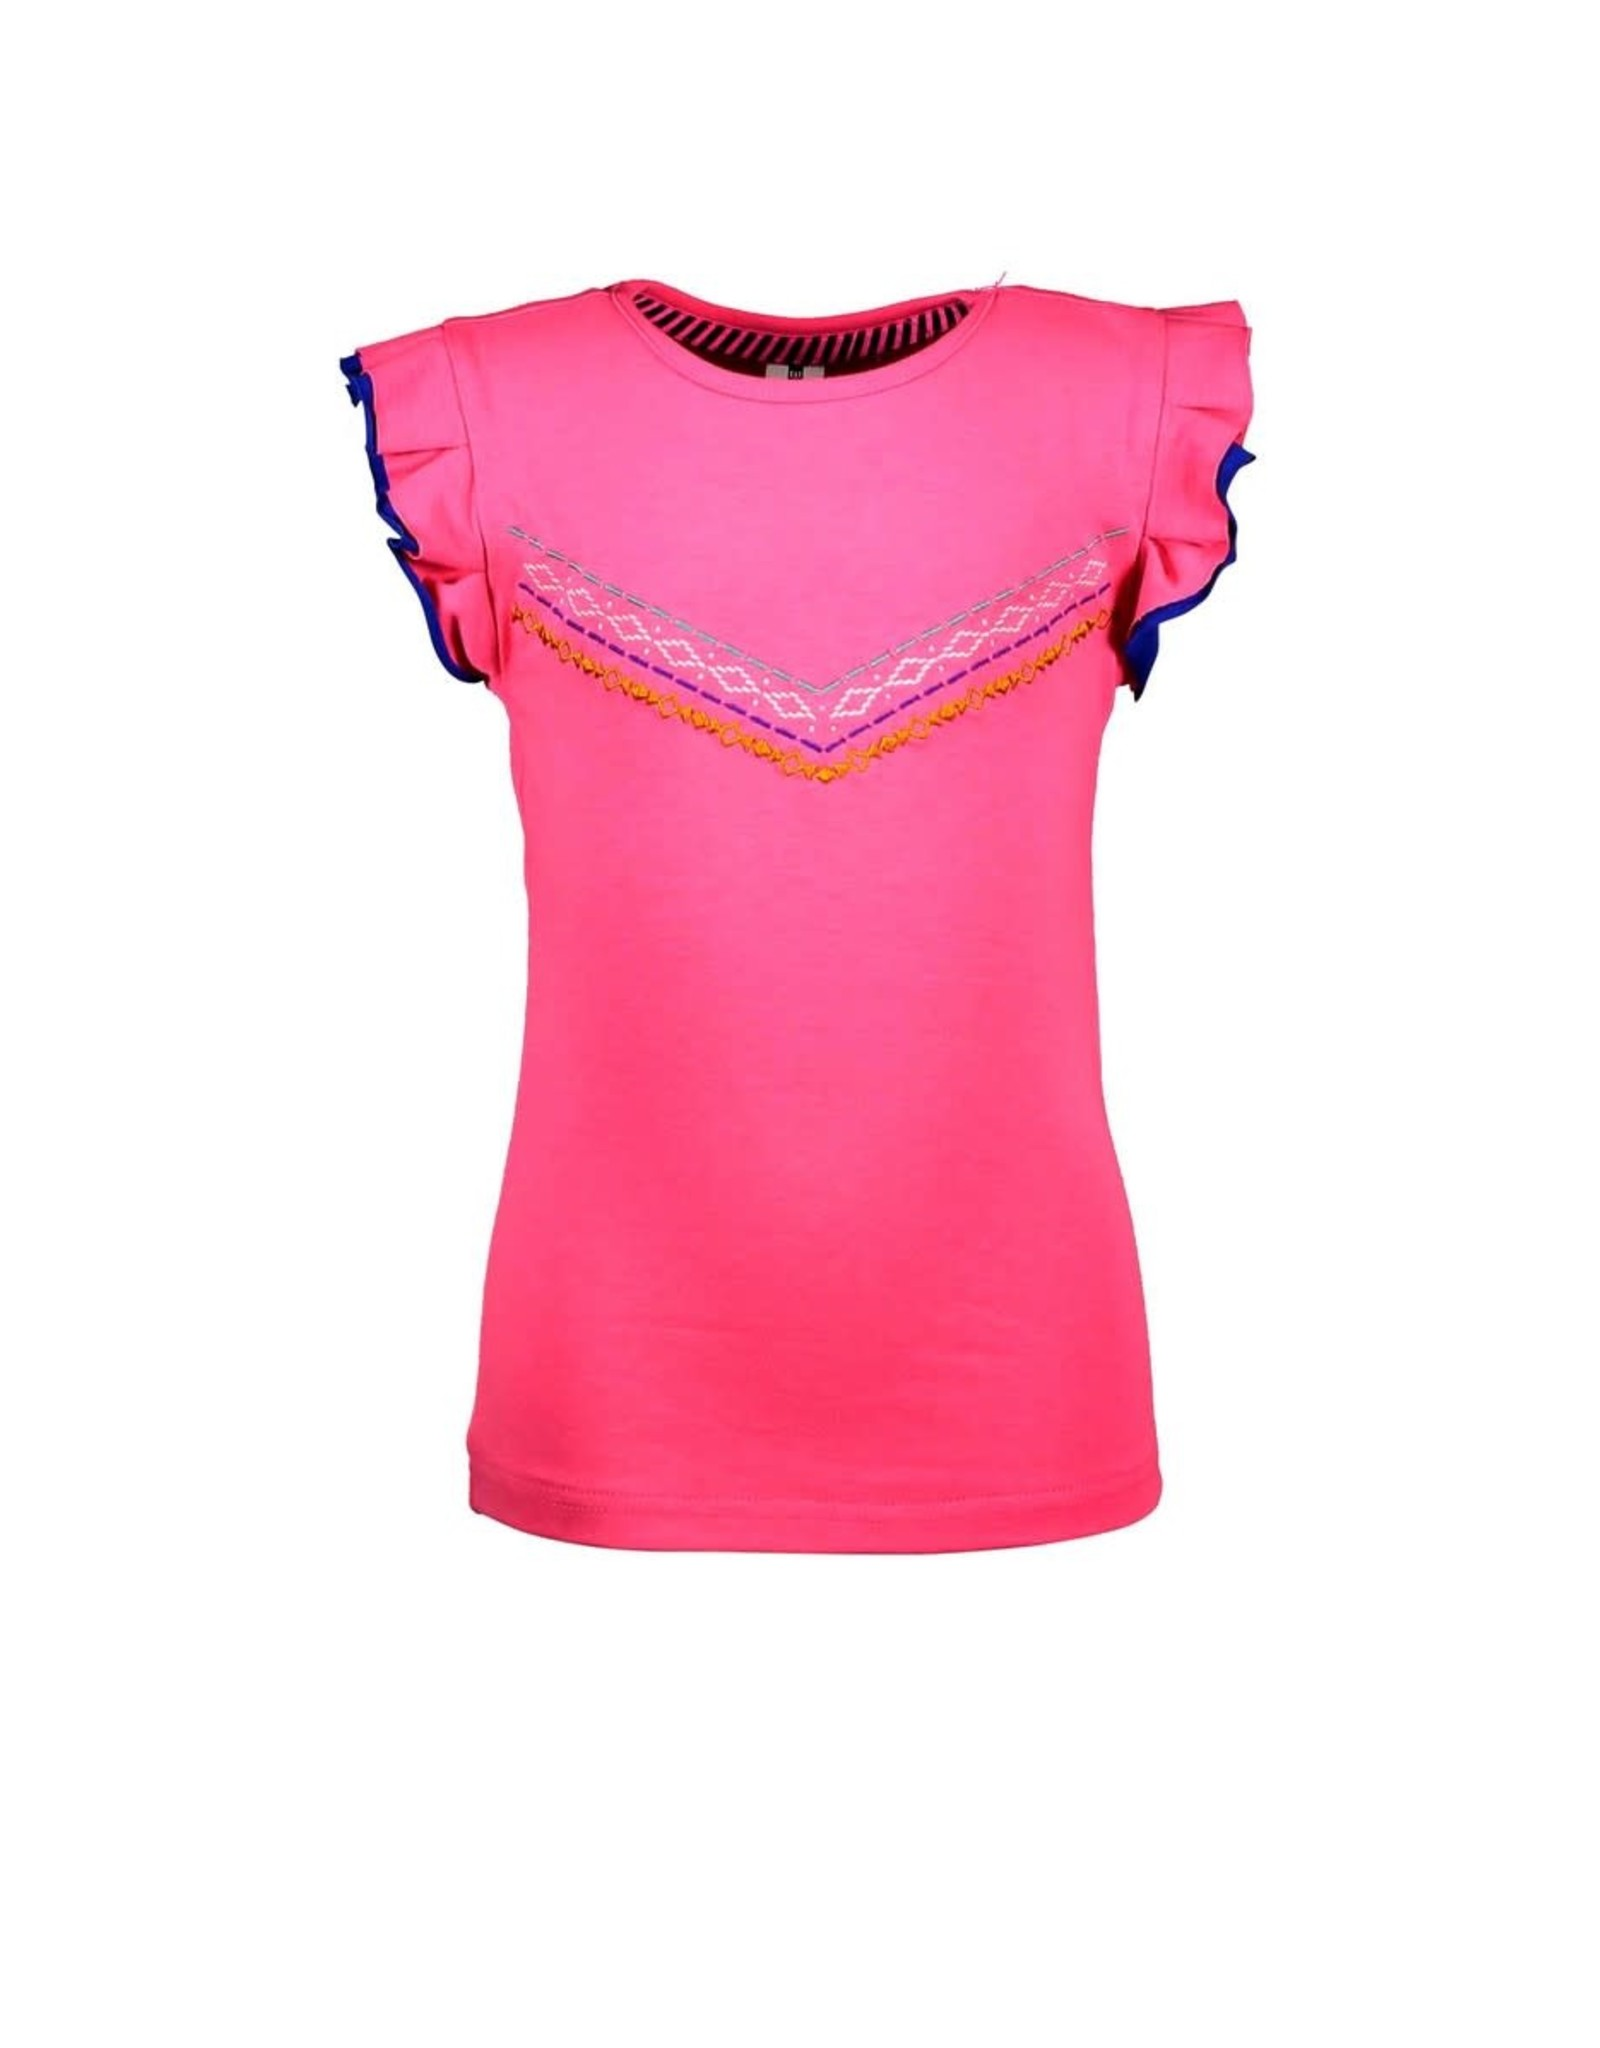 B.Nosy B.Nosy meisjes t-shirt met rouches mouwen Knock Out Pink